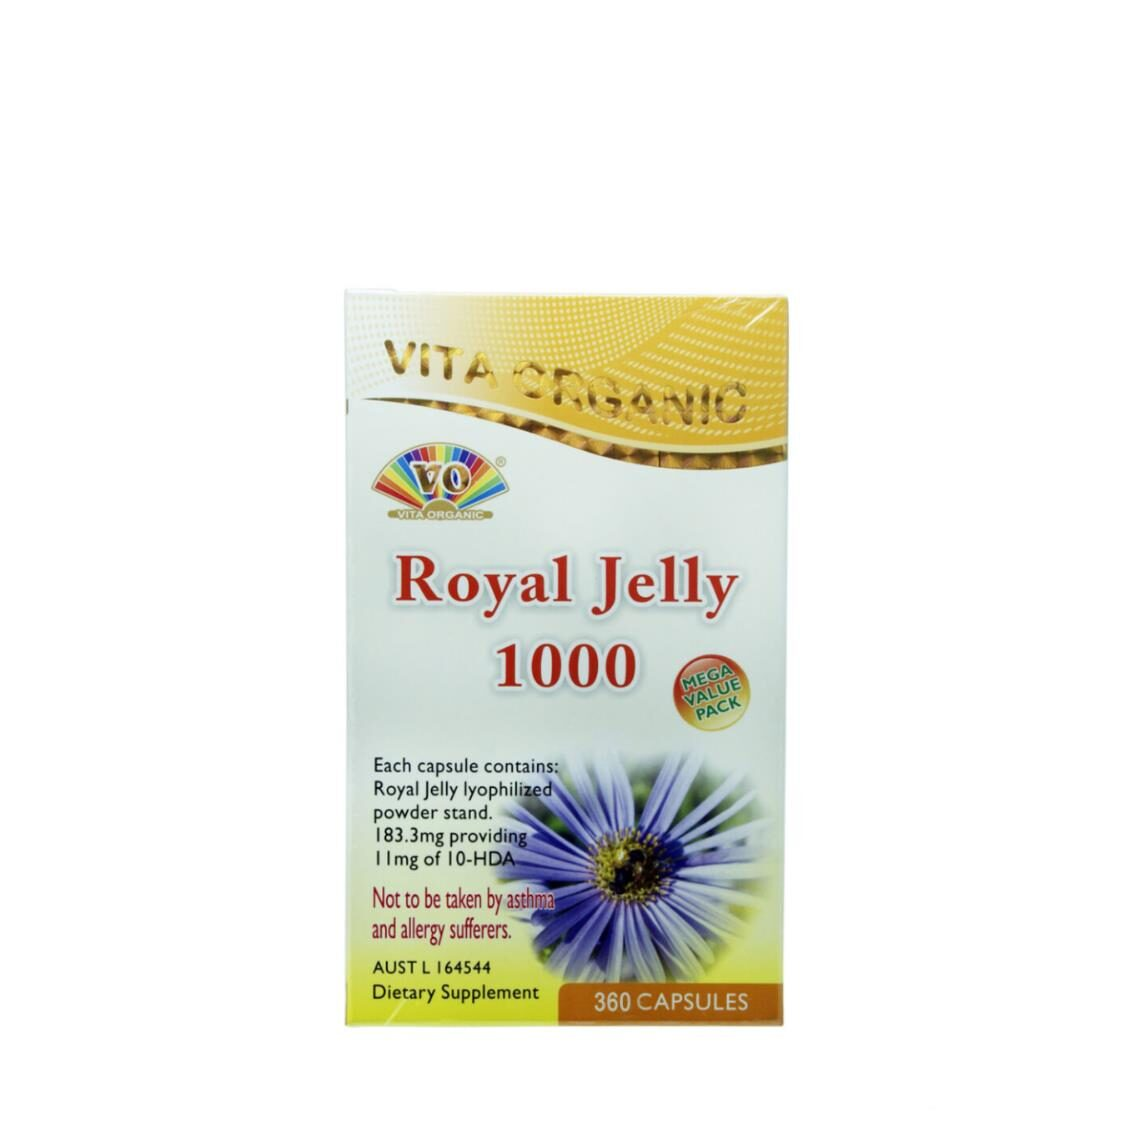 Royal Jelly 1000 365 Capsules